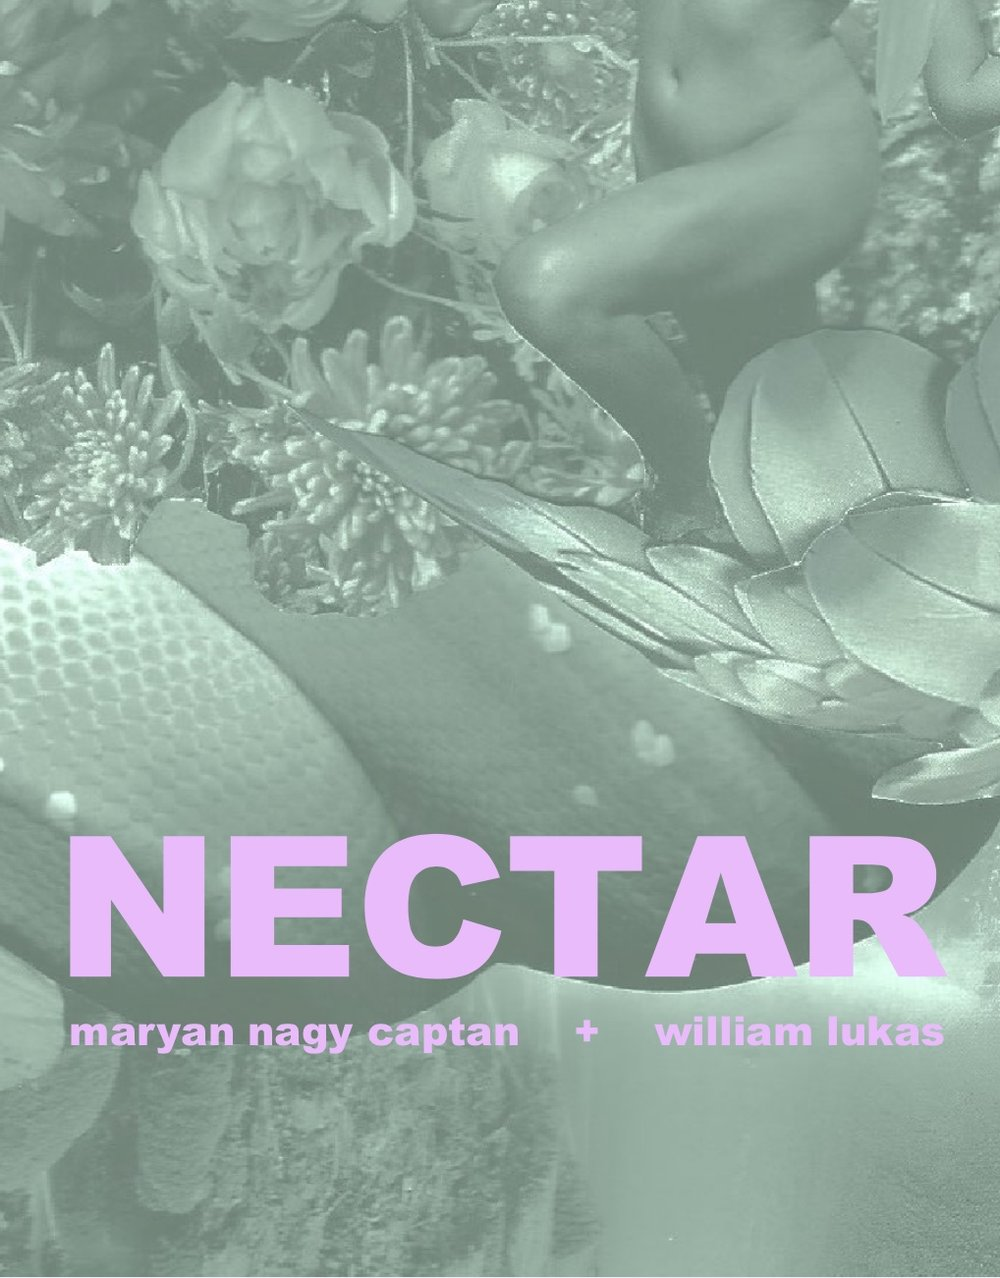 Read NECTAR, the new ekphrastic collaboration by Maryan Nagy Captan & artist William Lukas -